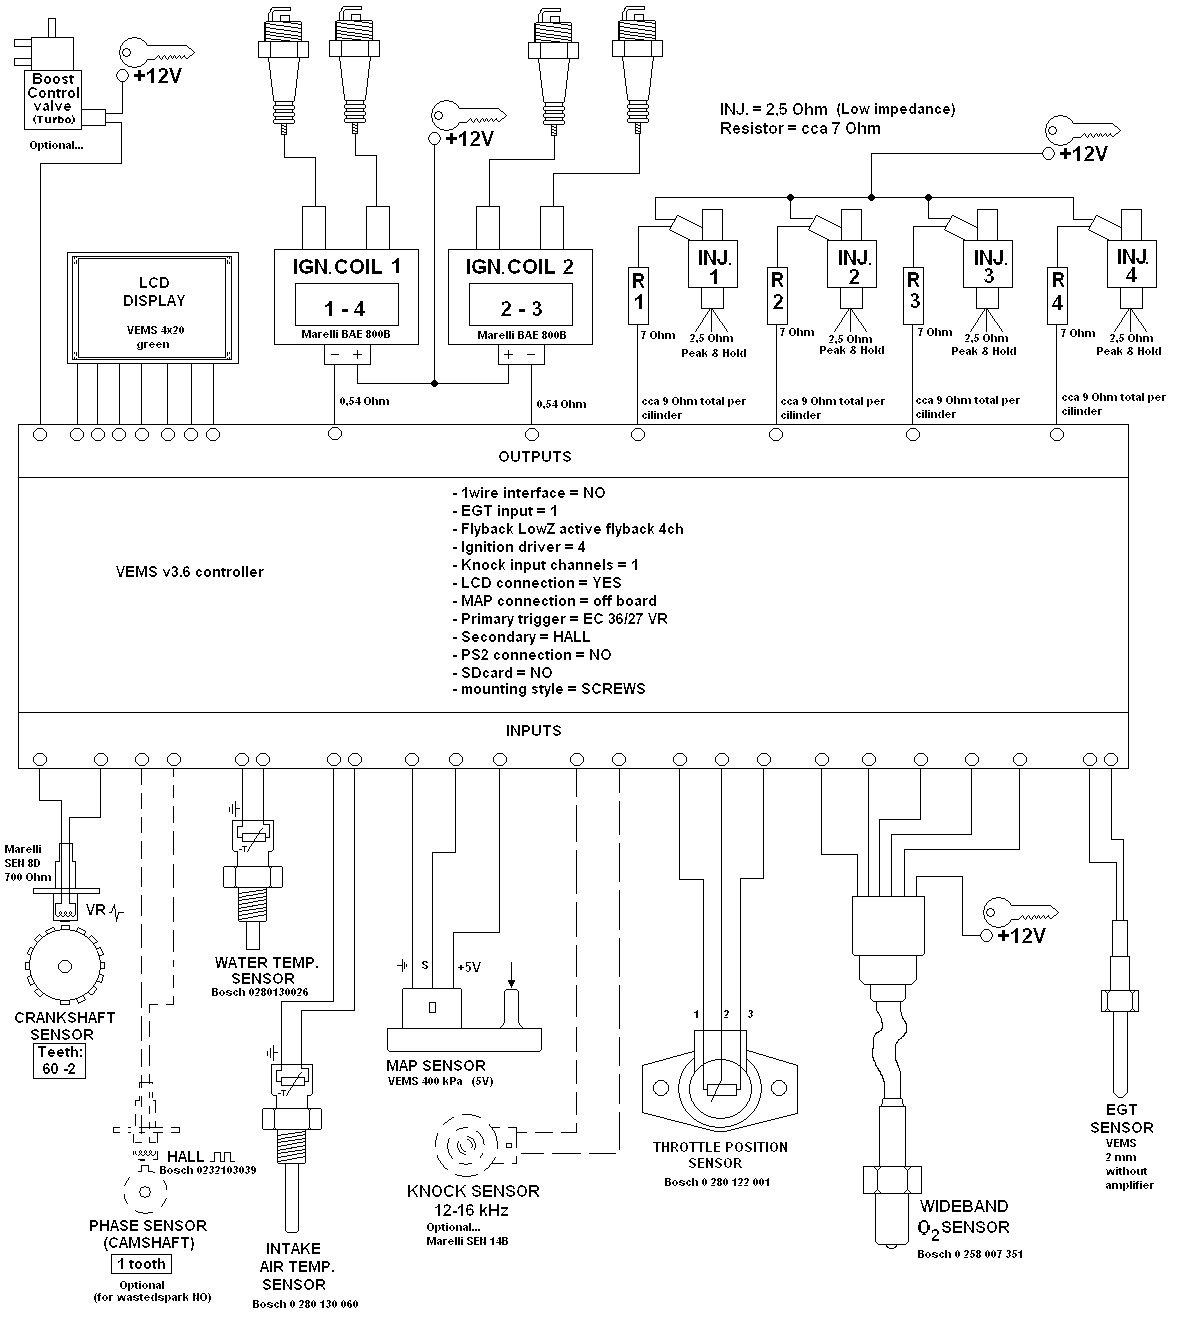 Vw Lupo Wiring Diagram 22 Images Diagrams Volkswagen Beta Radio Index Of Files Lanciaslovakia Digram Vems For Lancia 2l 16vt At